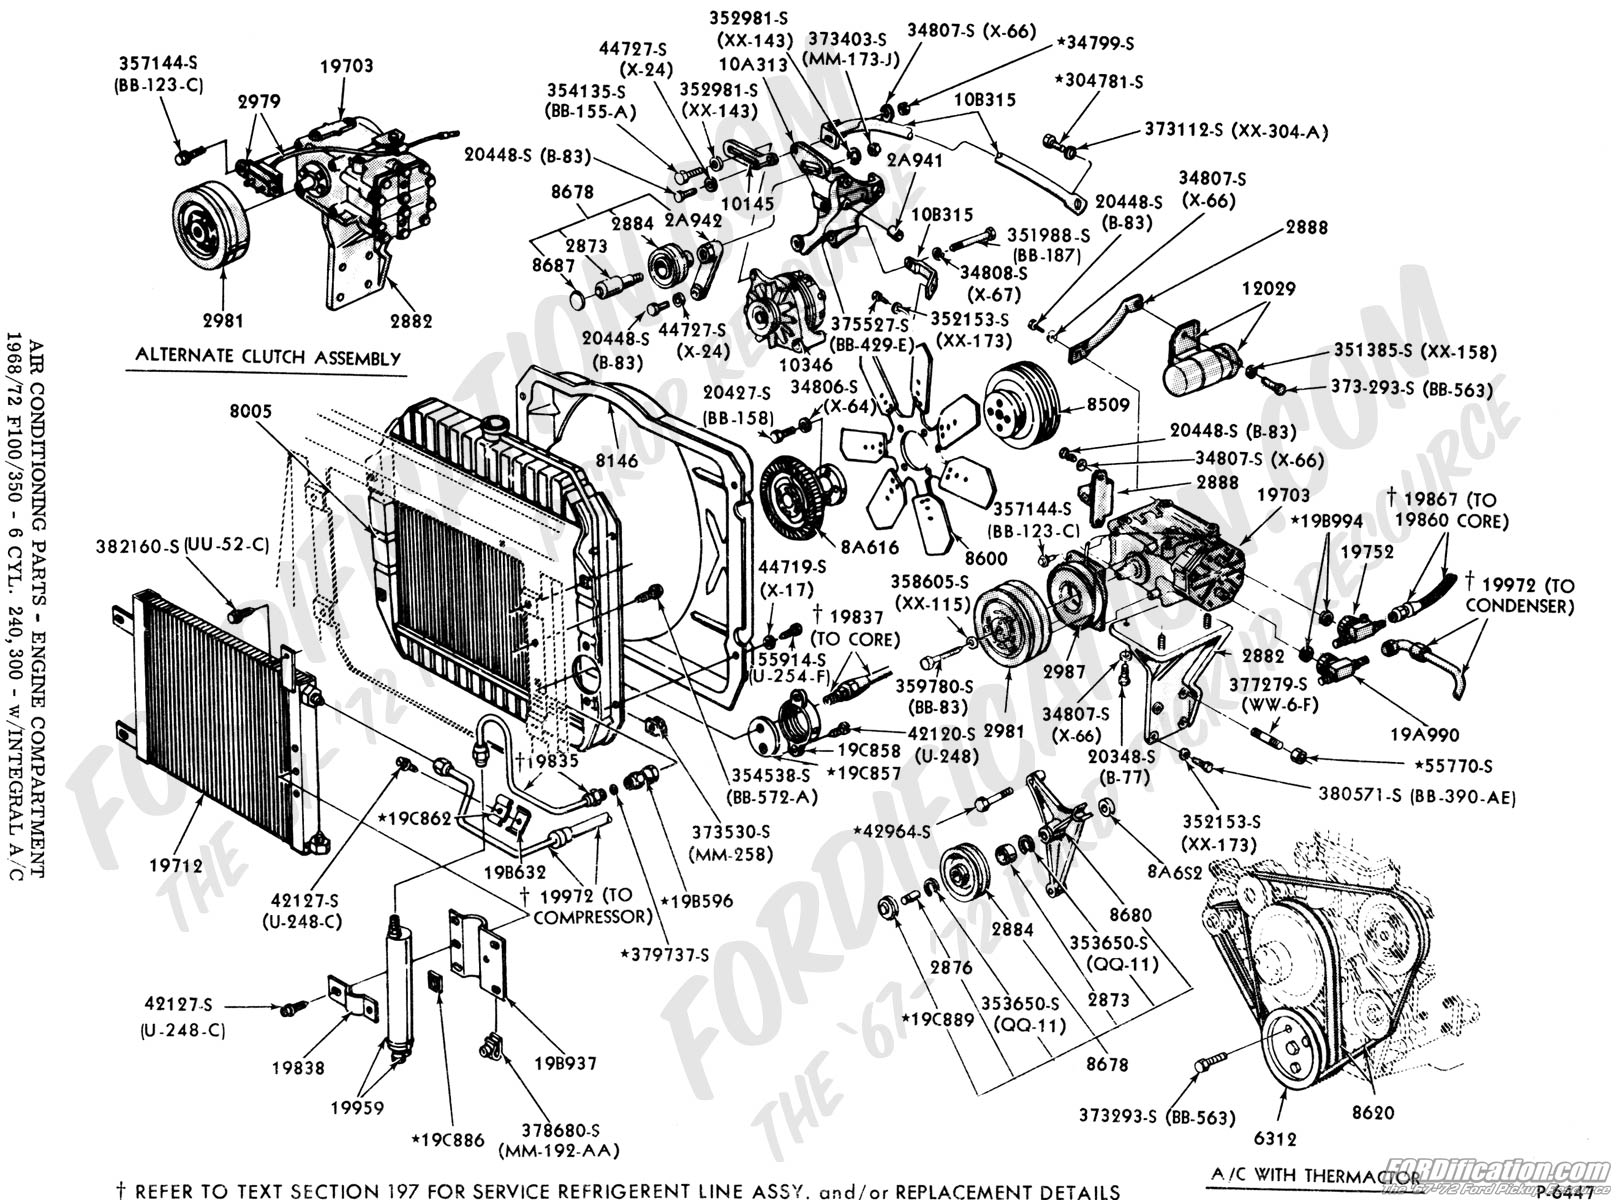 7 3 Powerstroke Firing Order Diagram Diagrams Wiring Diagram Images